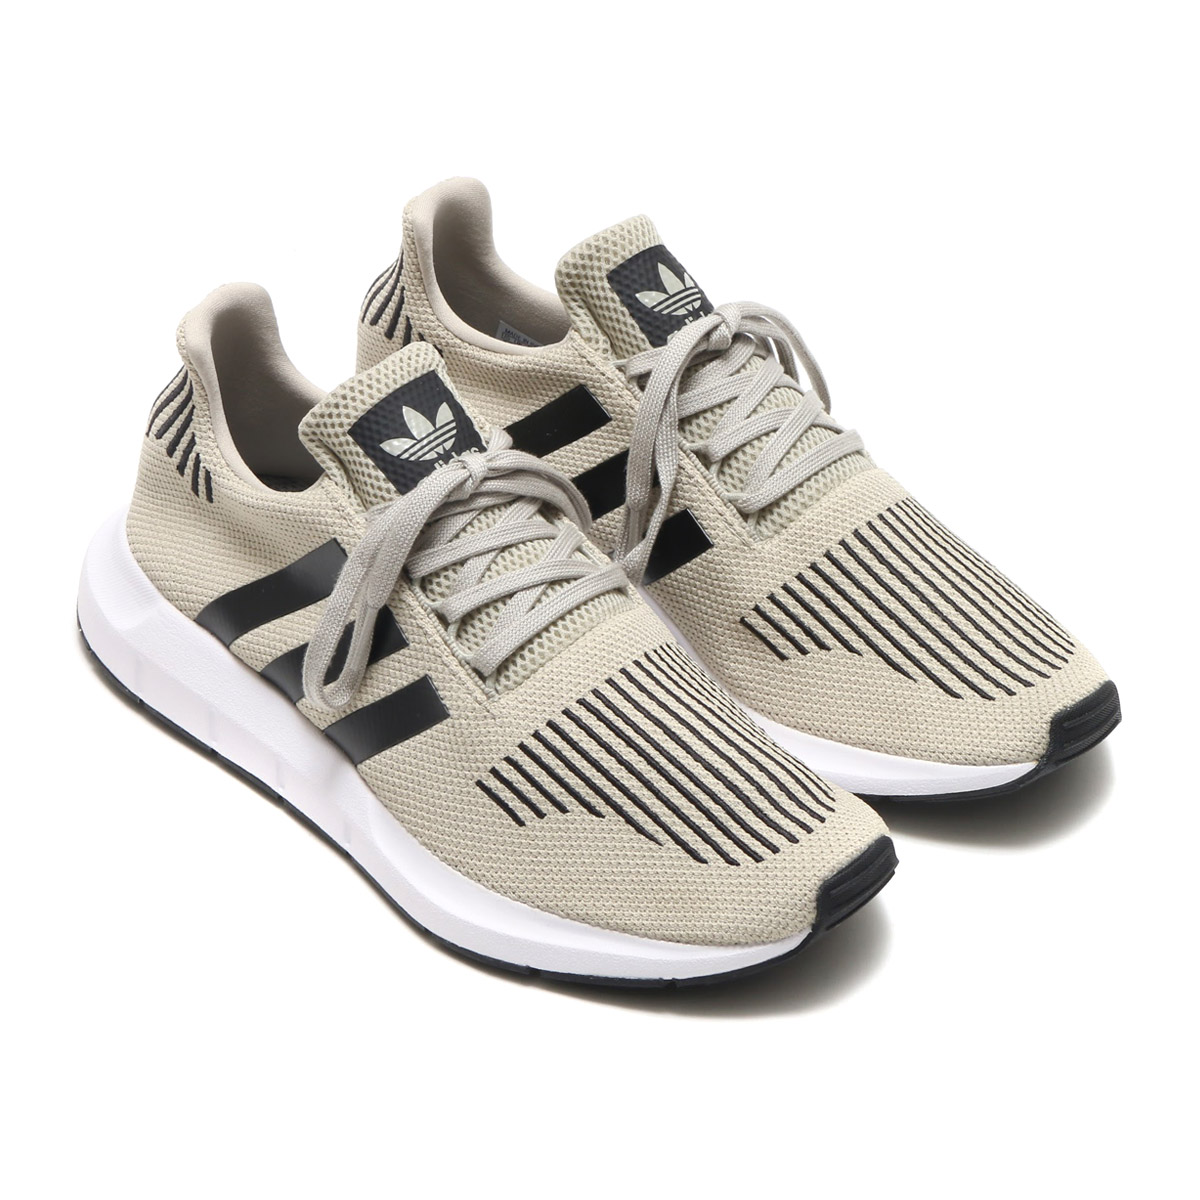 8b7ee98c5 Sporty daily shoes